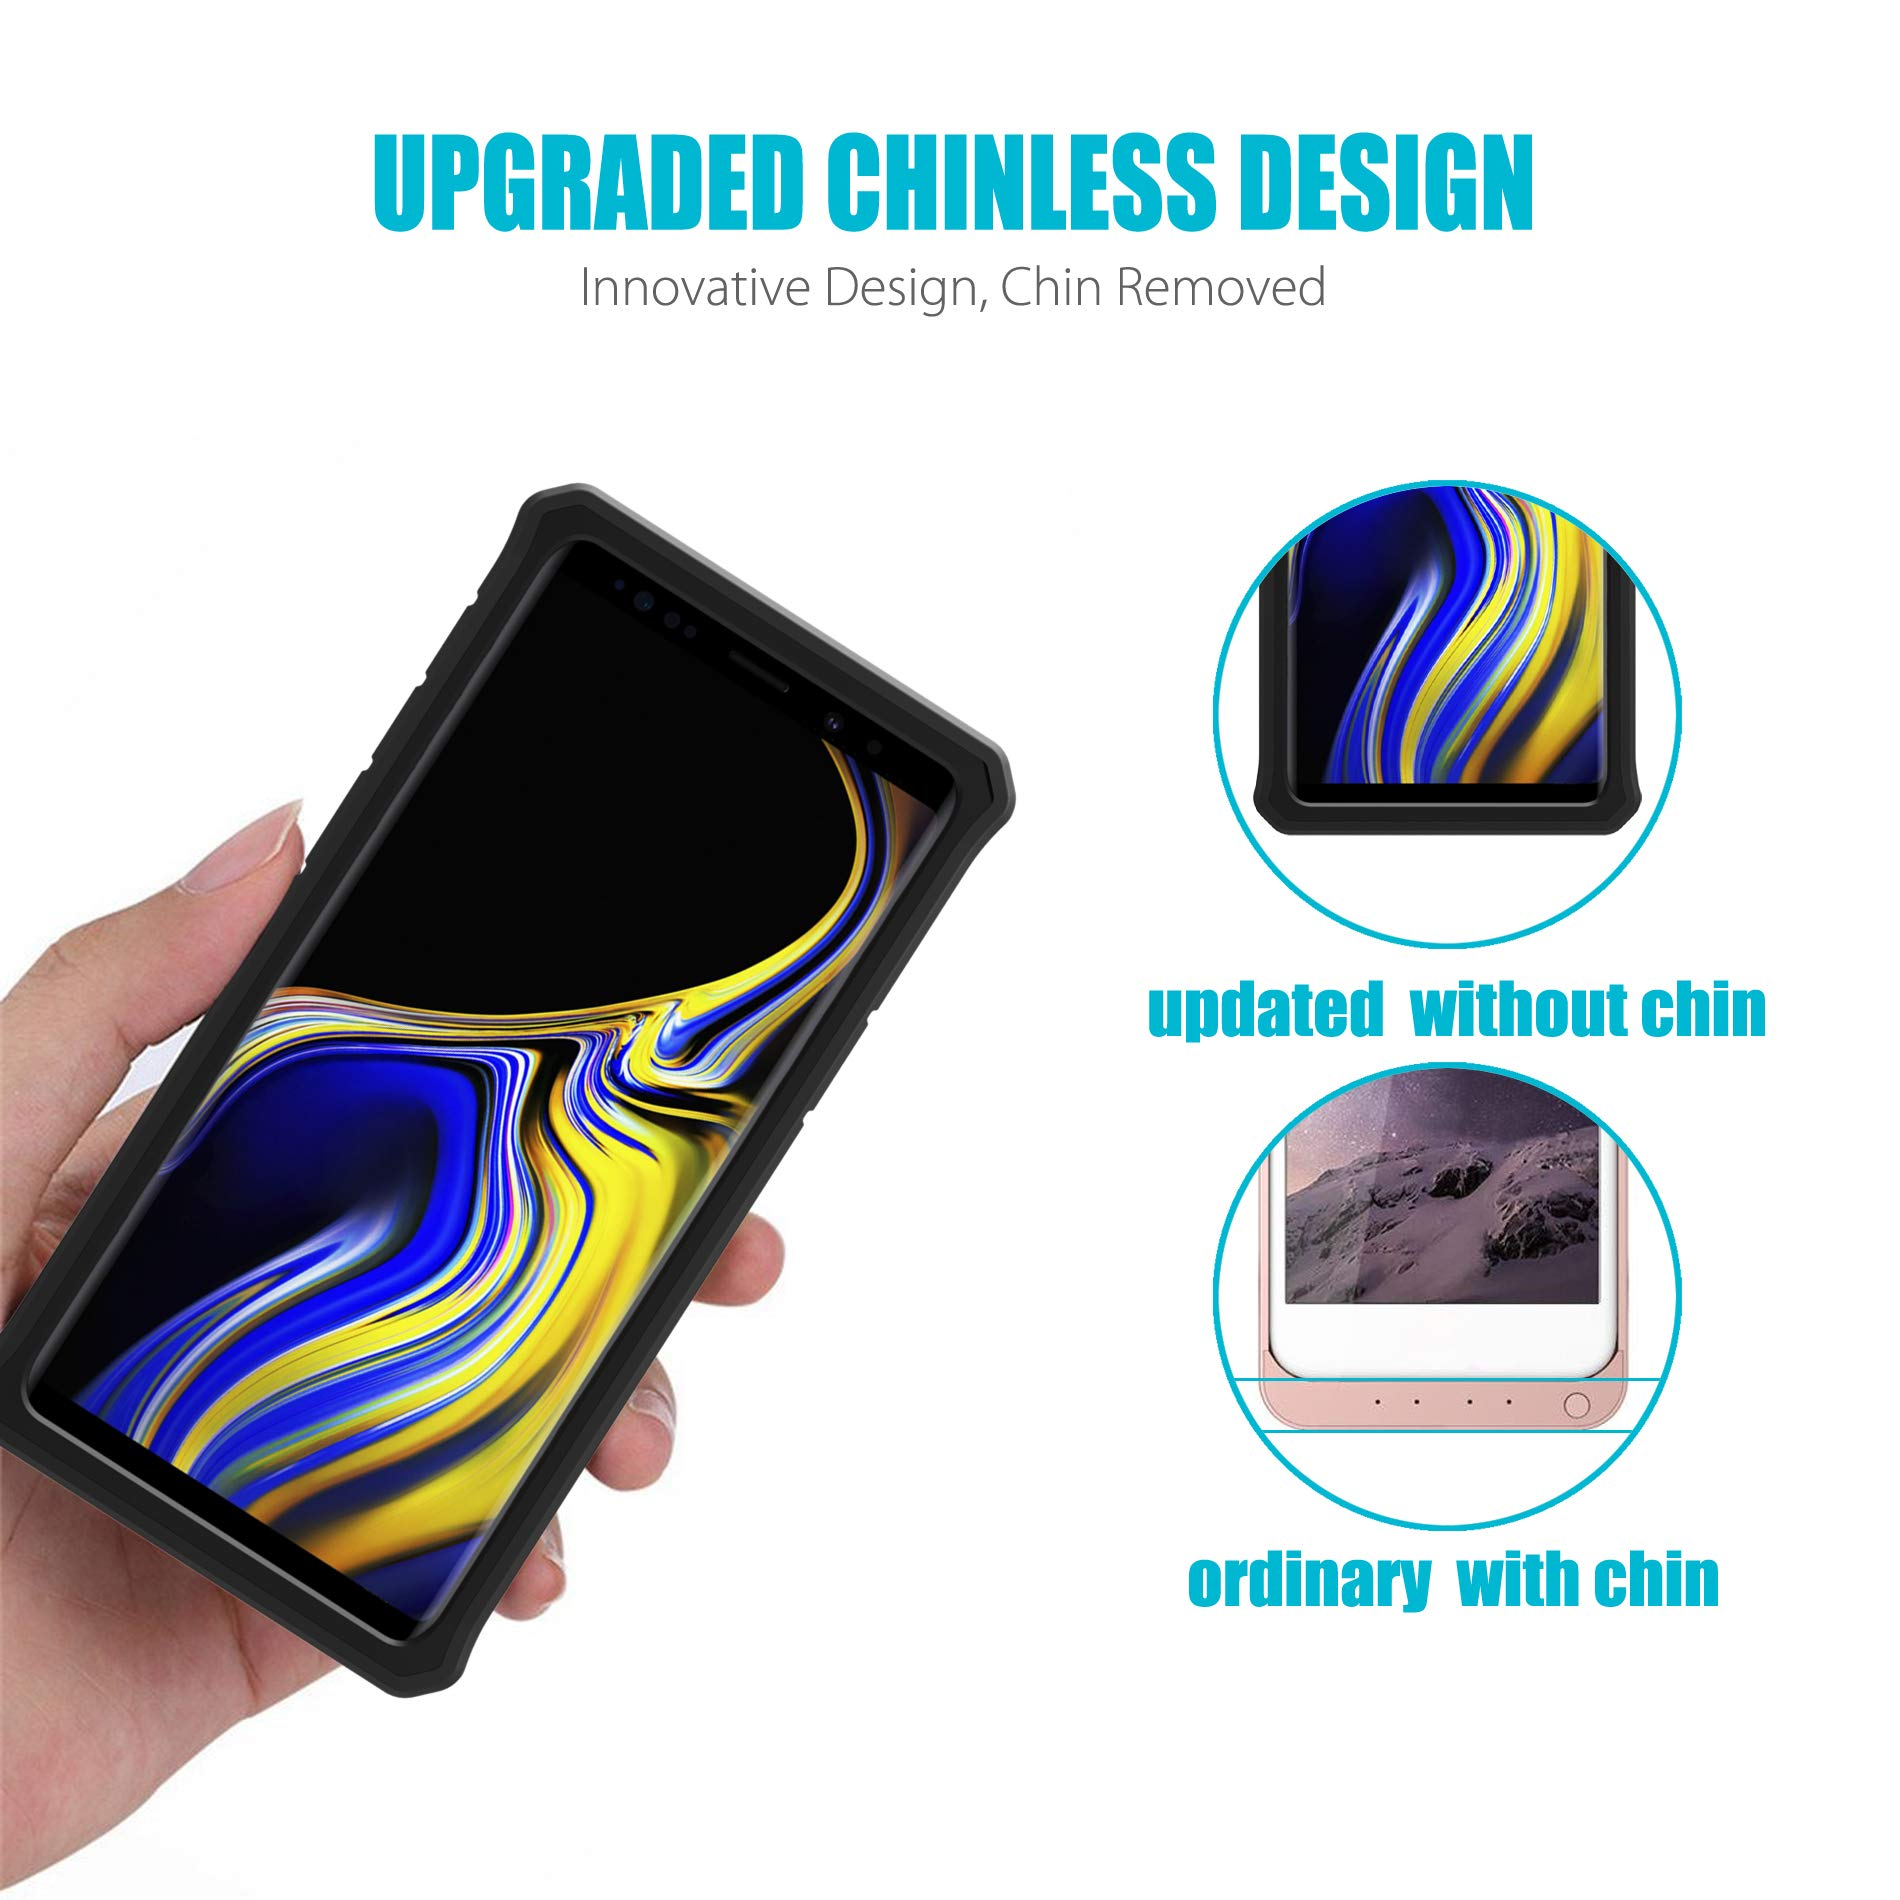 Galaxy Note 9 Battery Charging Case, ZeroLemon ZeroShock 10000mAh Extended Rechargeable Battery Rugged Case with Full Edge Protection for Samsung Galaxy Note 9 - Black by ZEROLEMON (Image #6)